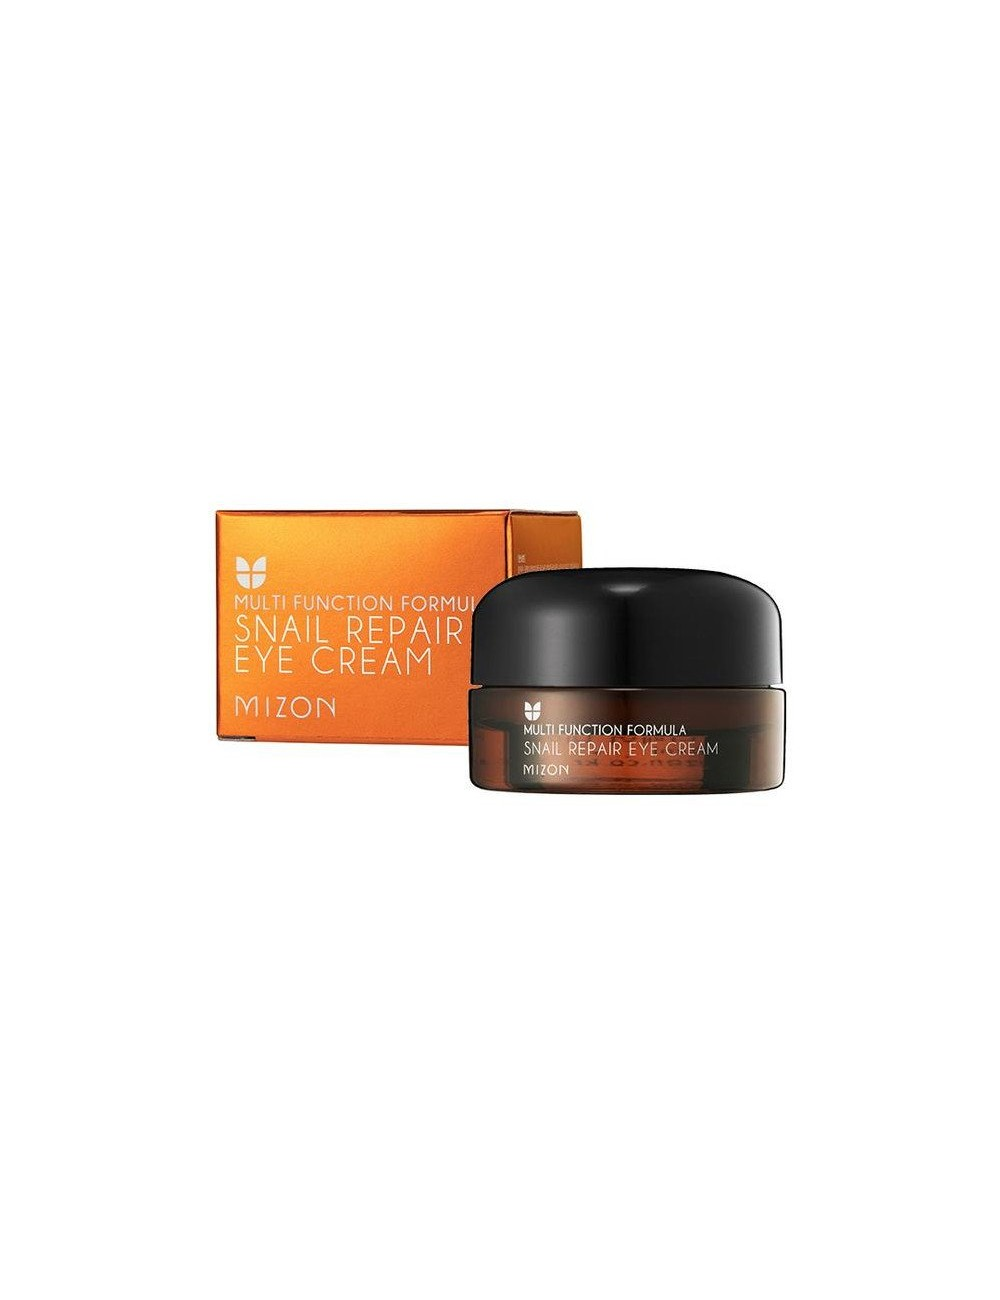 Contorno de Ojos Antiarrugas y Antiojeras Mizon Snail Repair Eye Cream 25ml